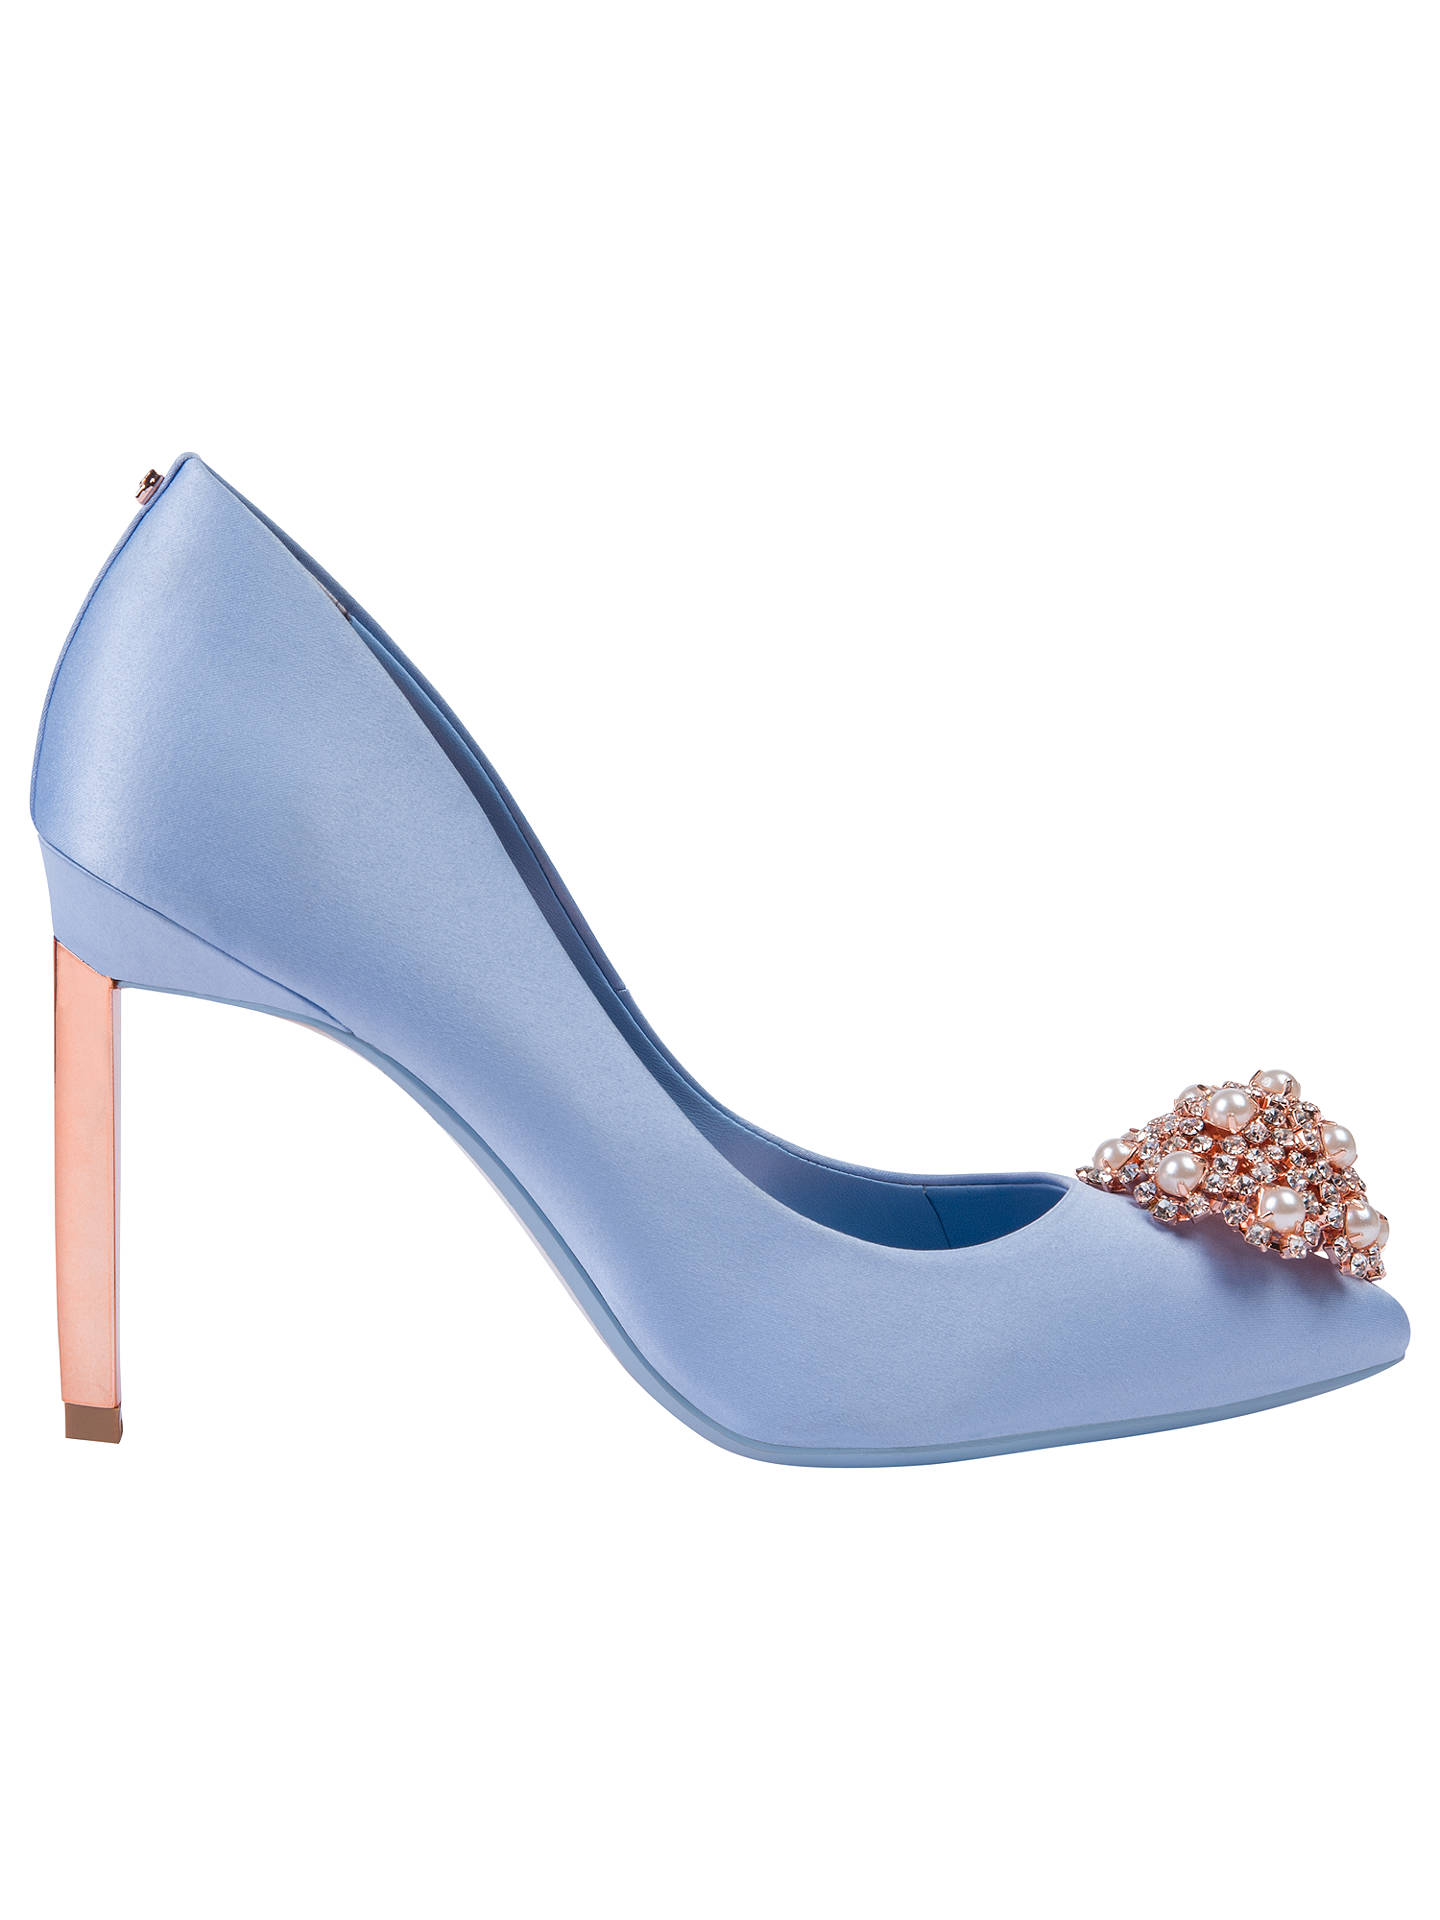 616a4471a8e2 Ted Baker Peetch 2 Embellished Stiletto Heel Court Shoes at John ...